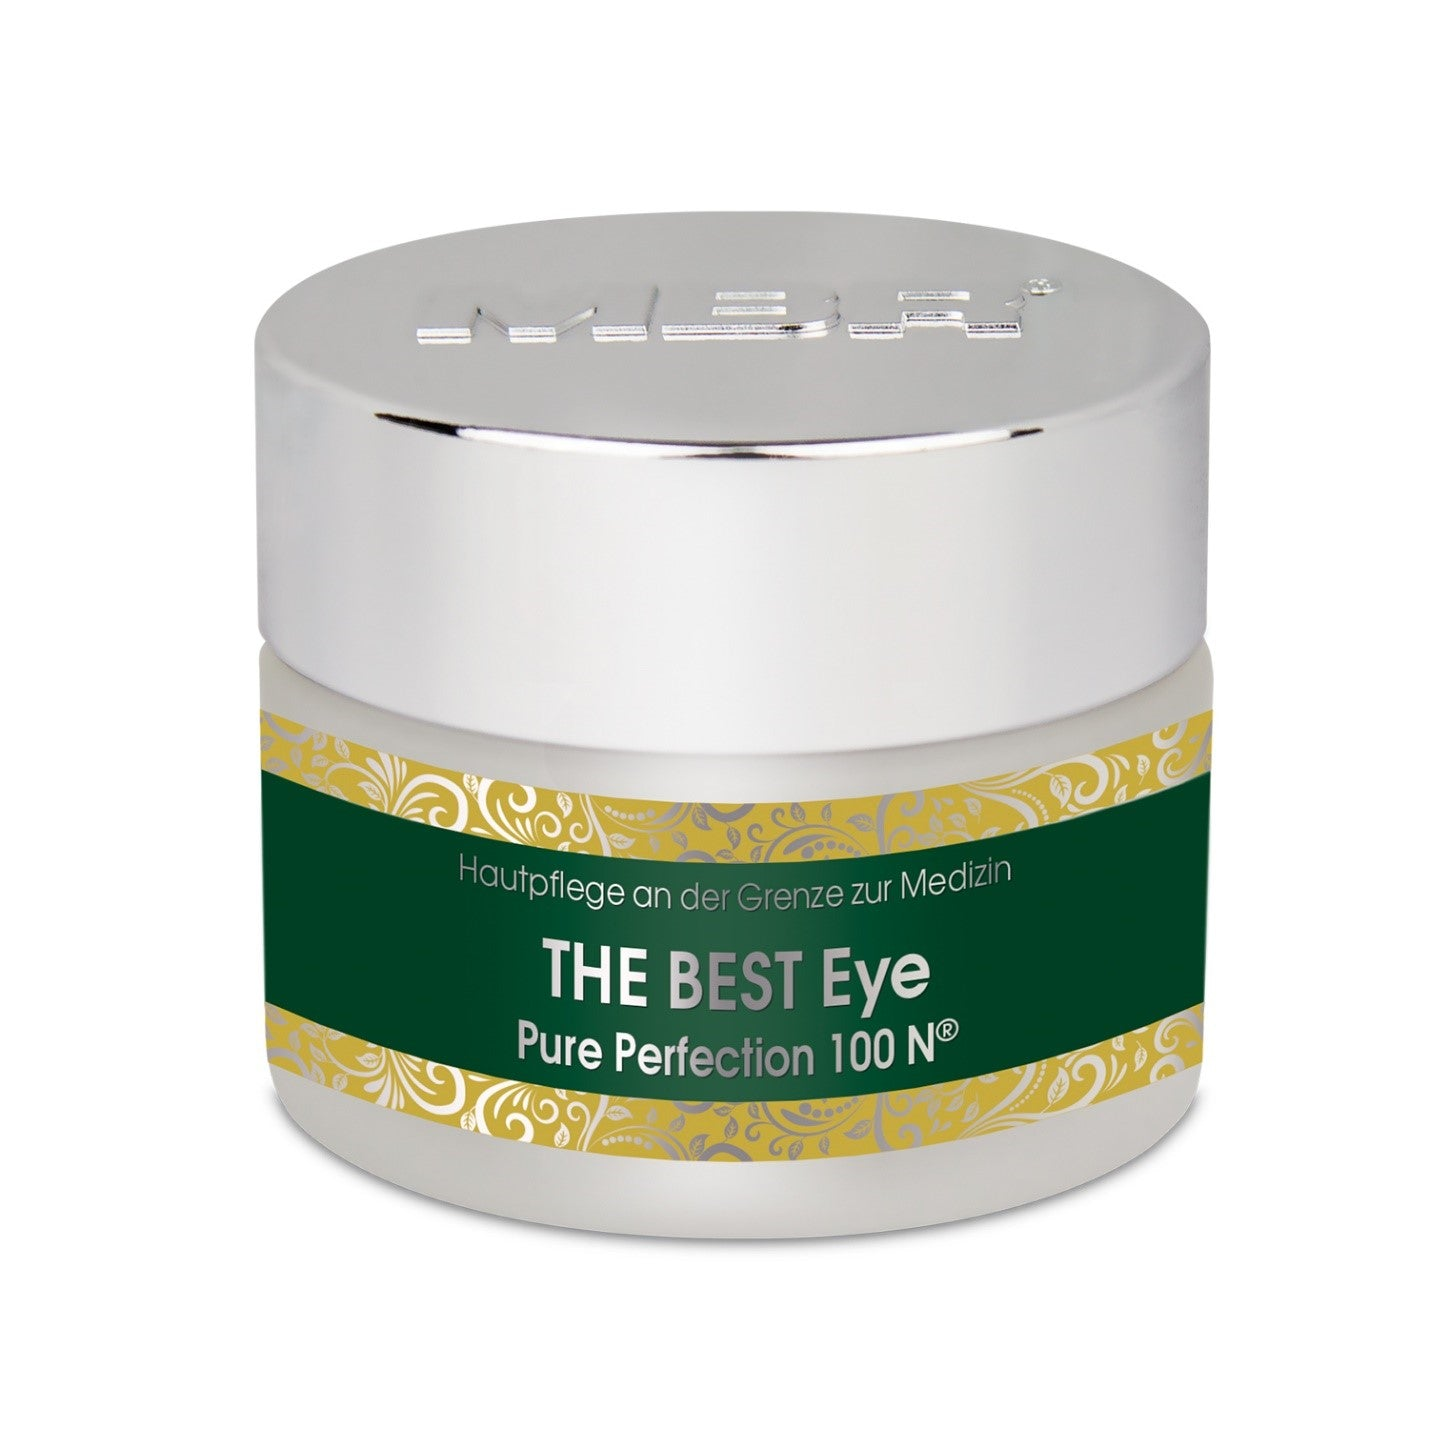 The Best Eye 1 Fl. OZ. - MBR